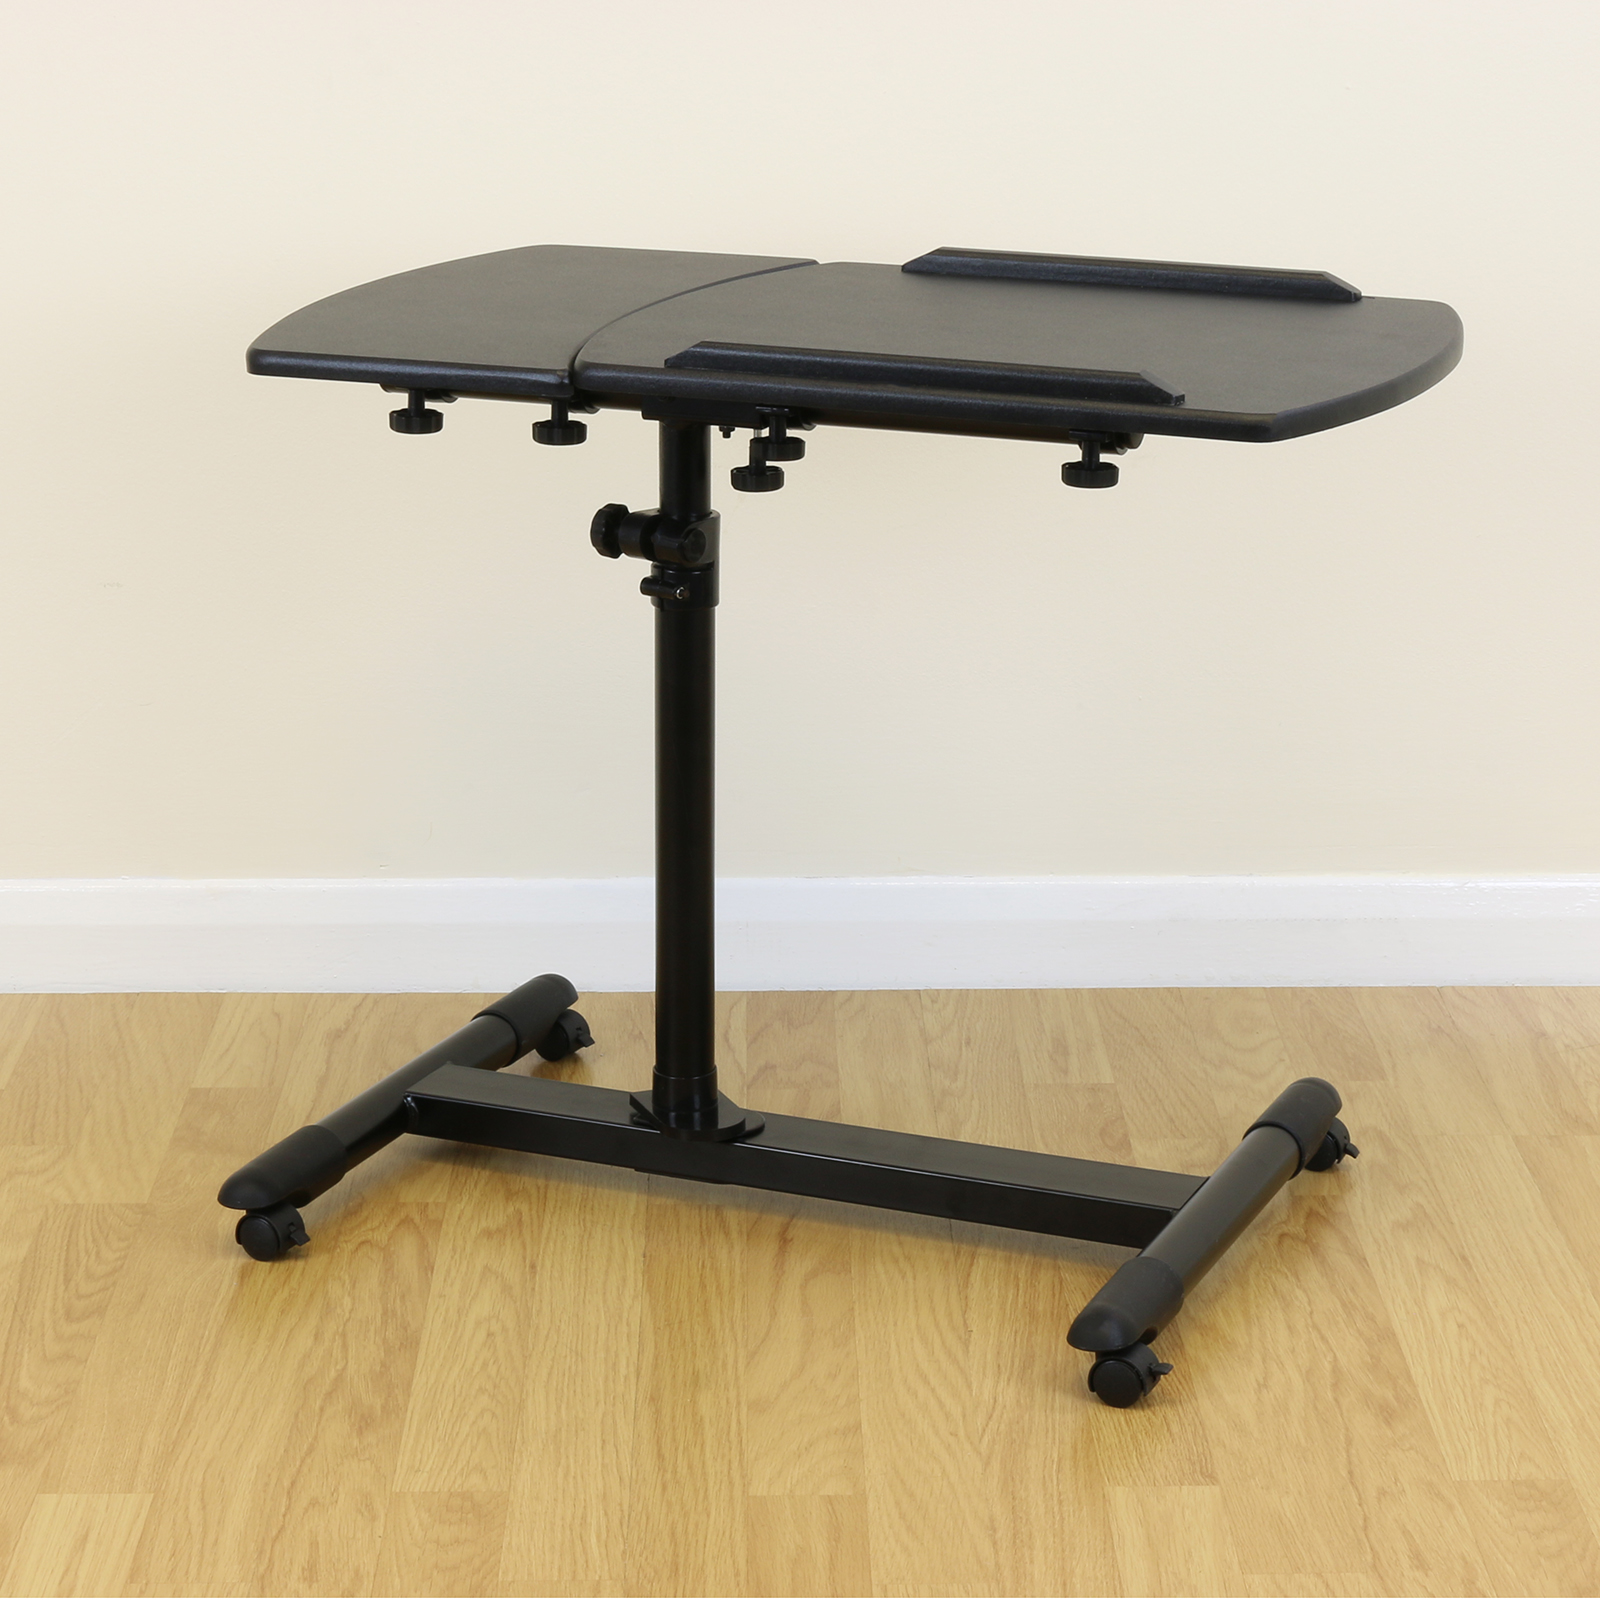 table height high chair student desk with black fully adjustable/moveable over bed mobility aid chair/sofa/hospital | ebay